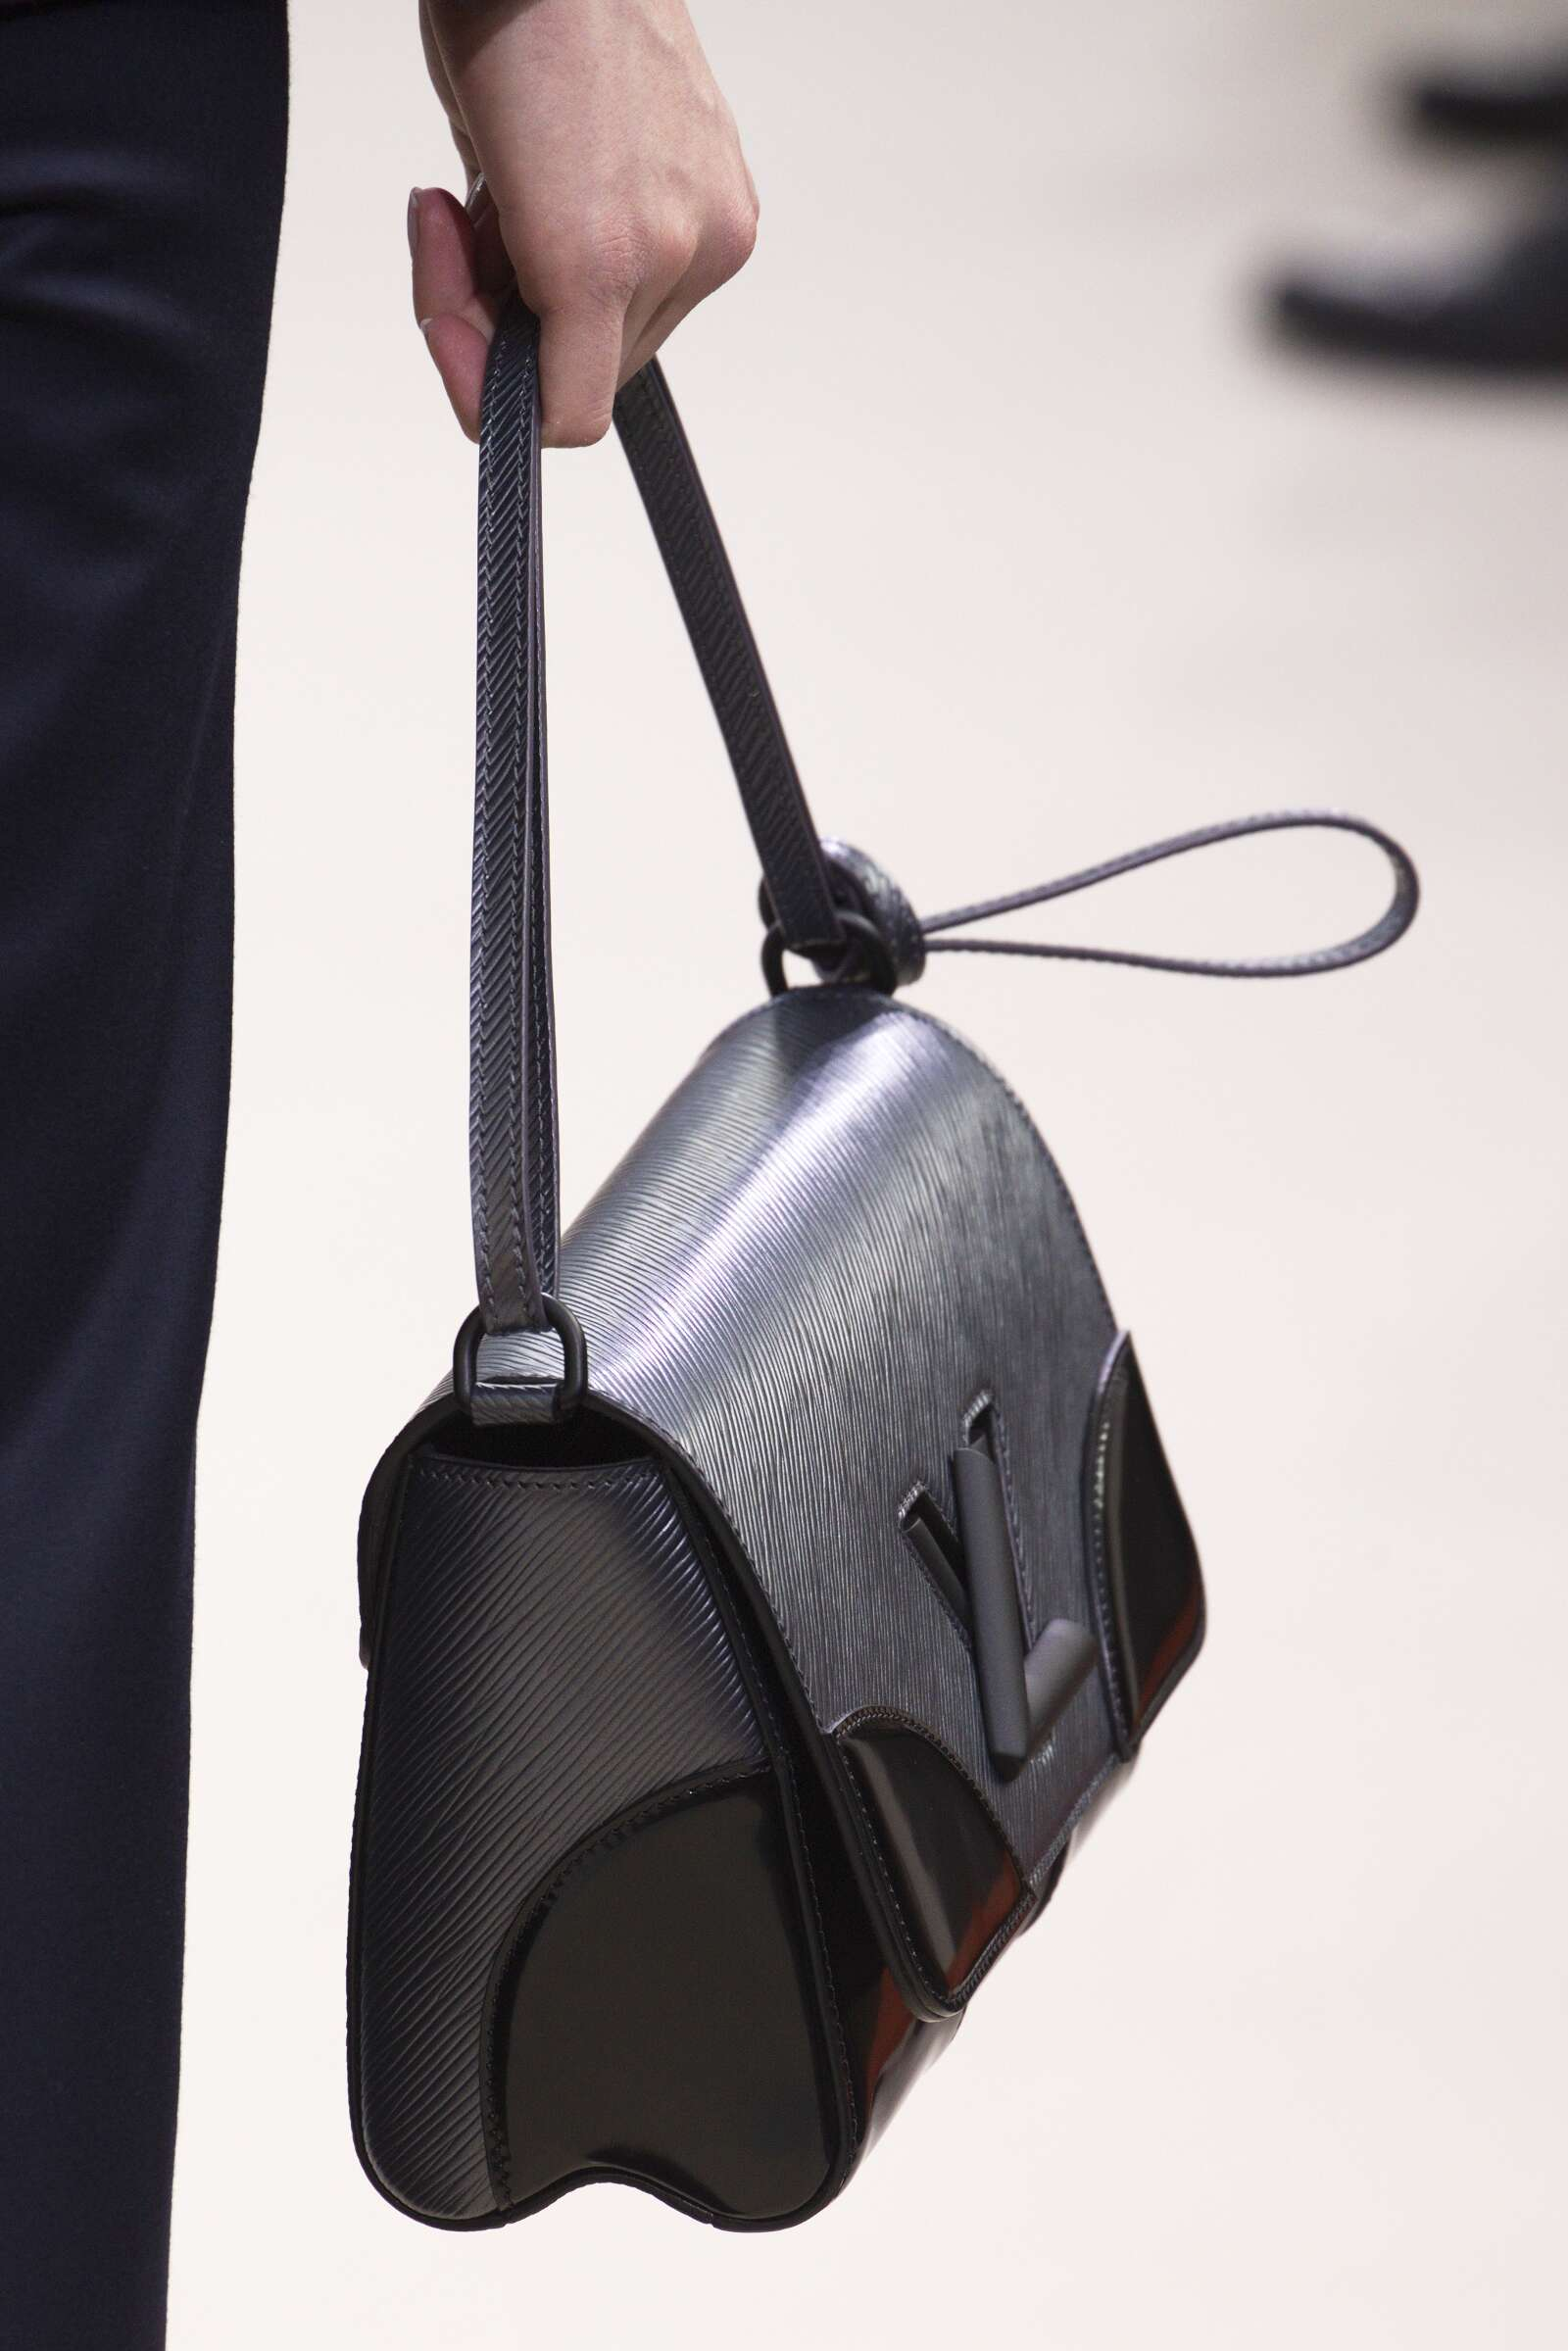 Louis Vuitton Bag Details Collection Paris Fashion Week Womenswear